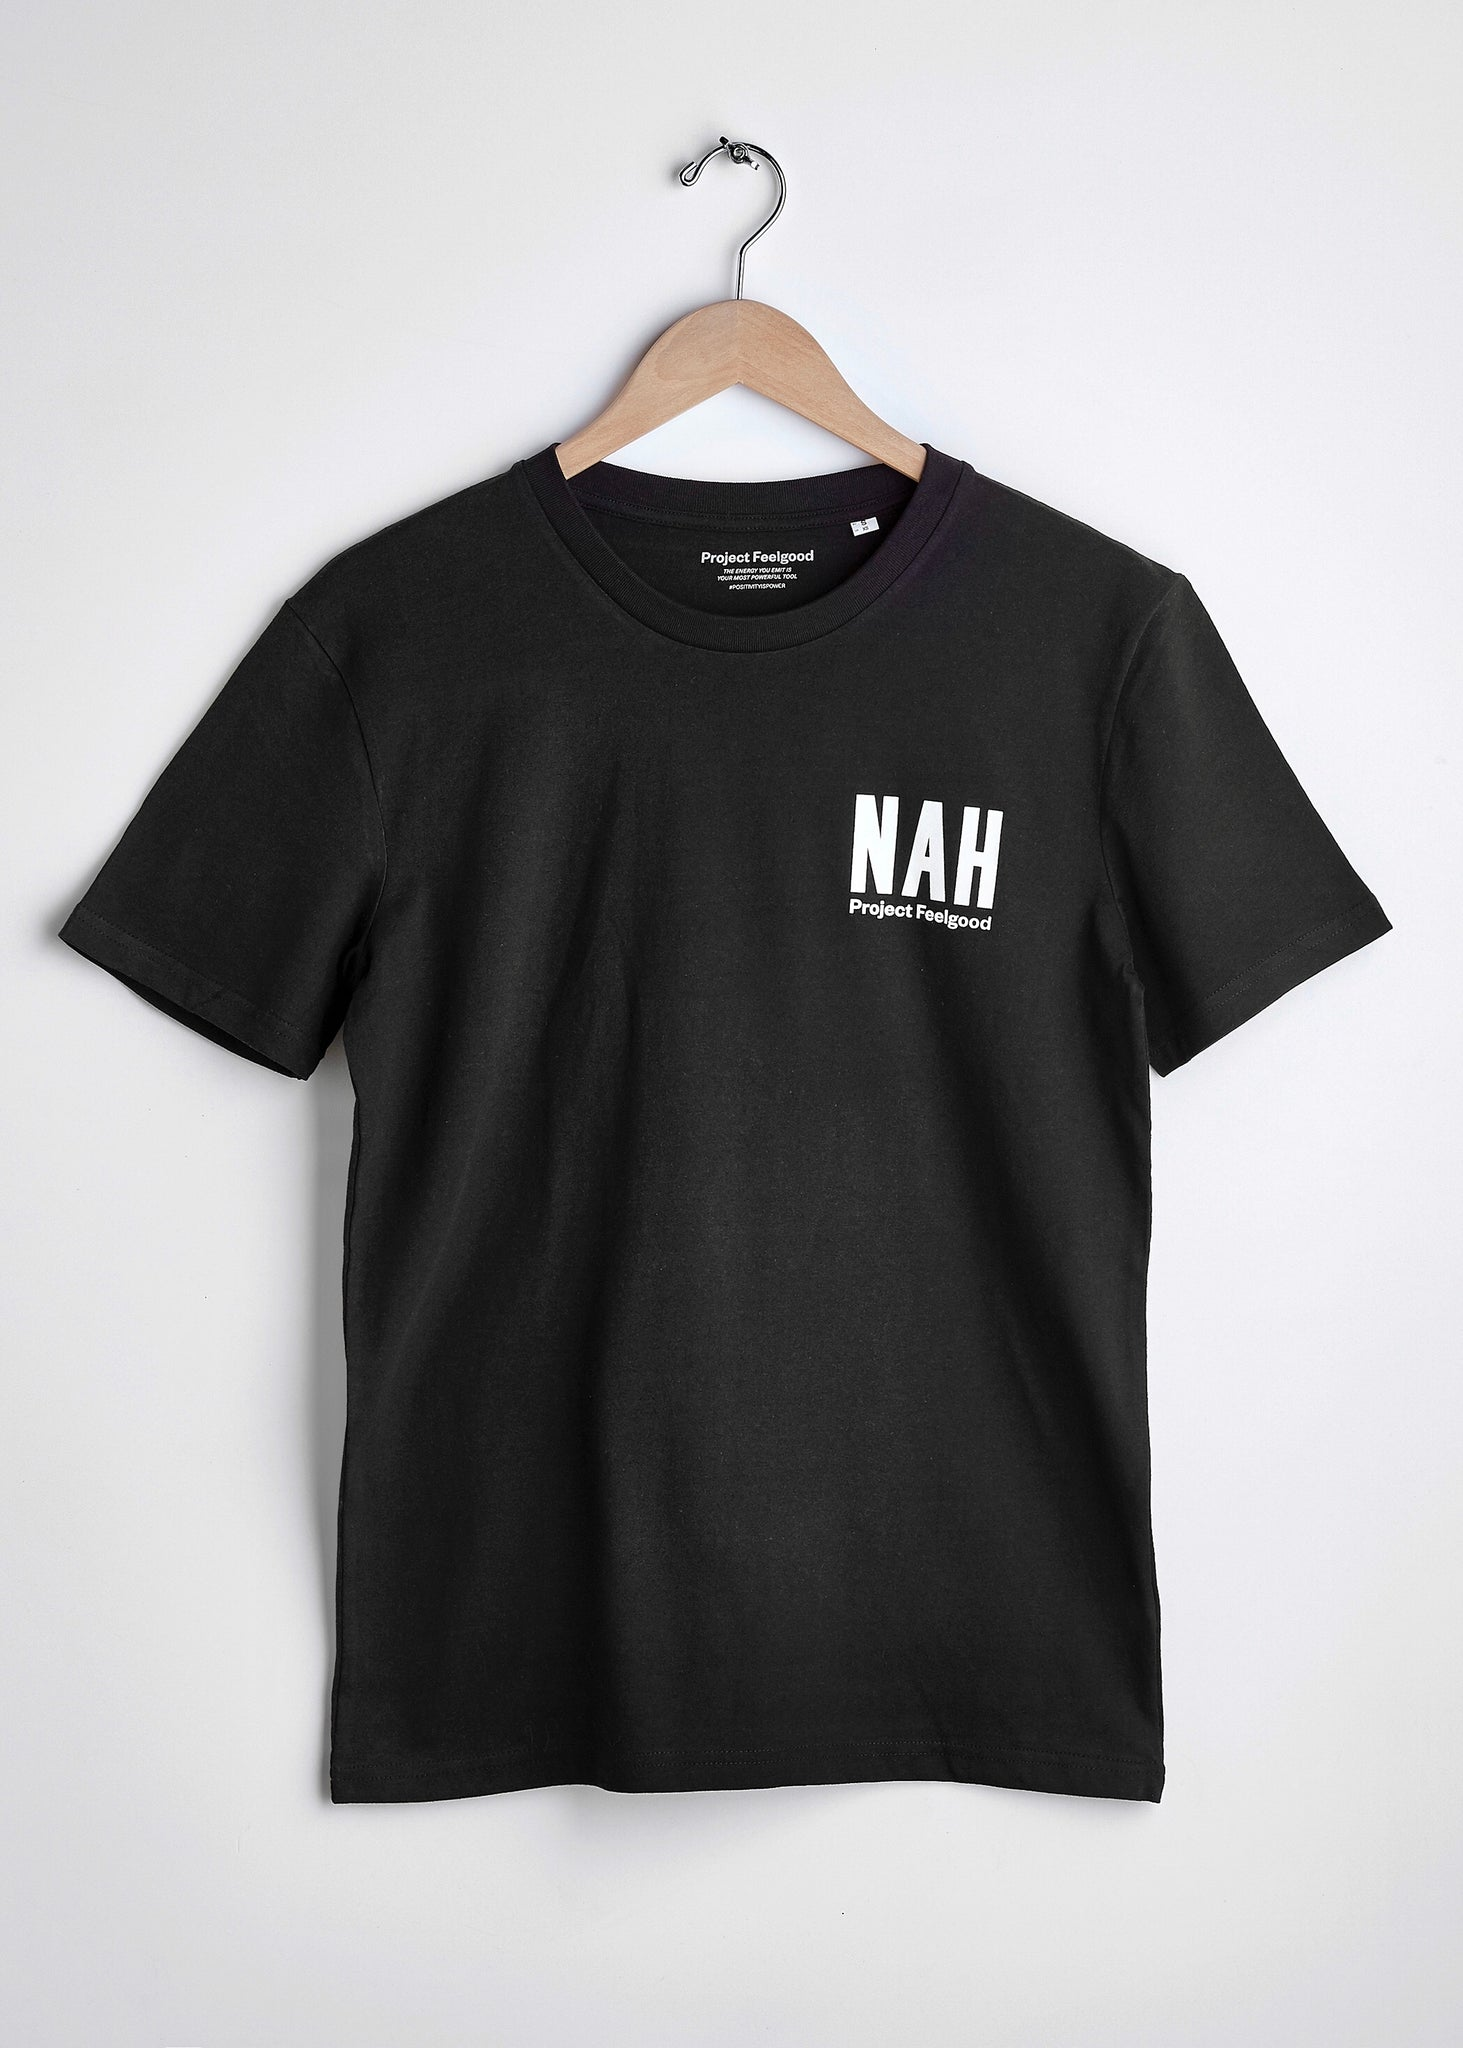 Nah - Midnight Black